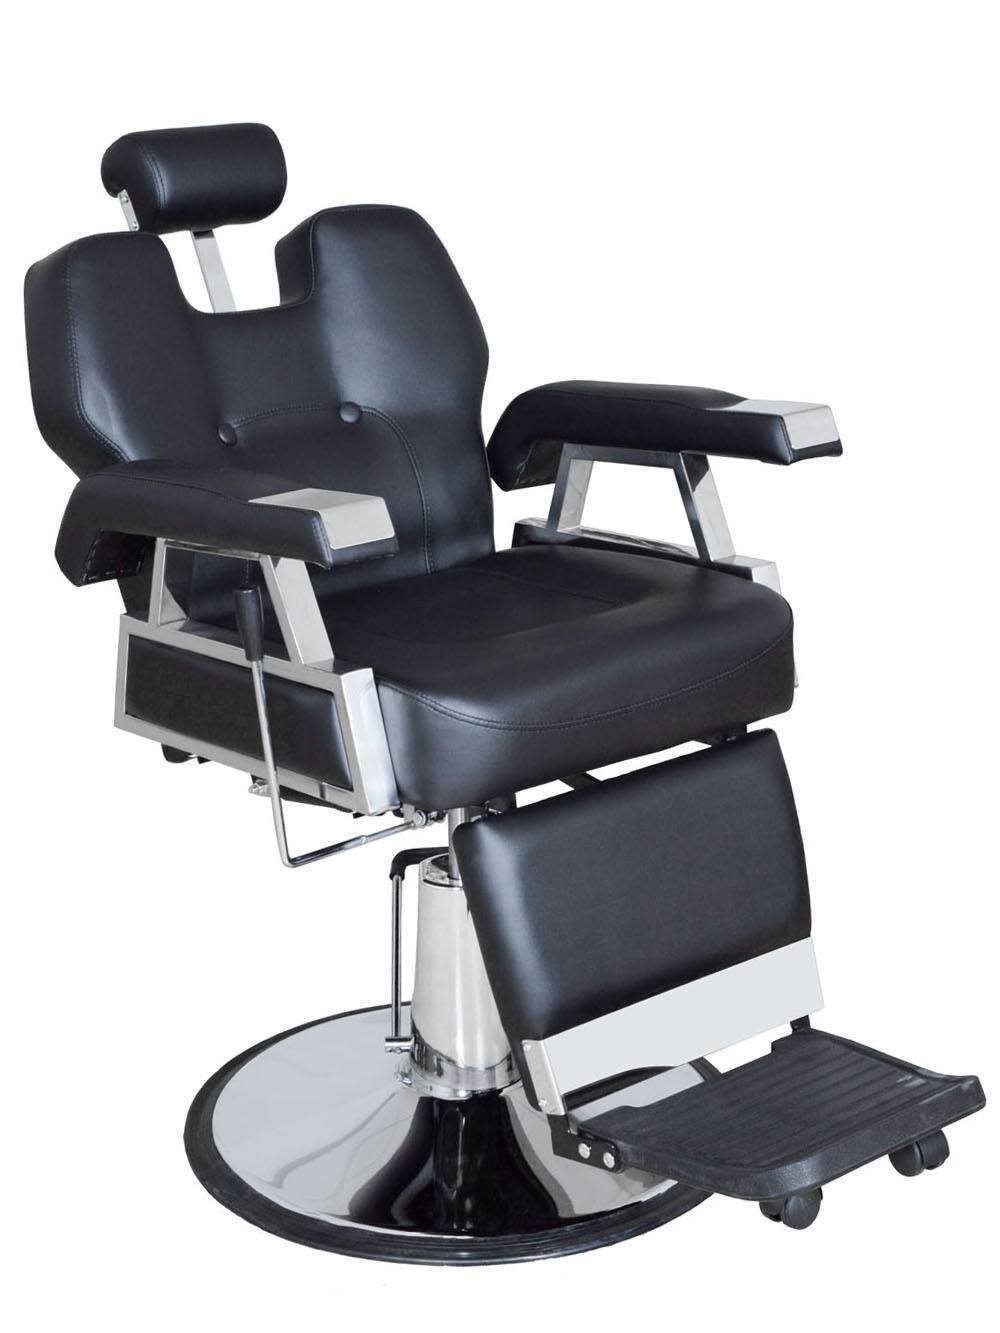 All Purpose Hydraulic Reclining Barber Chair Salon Beauty